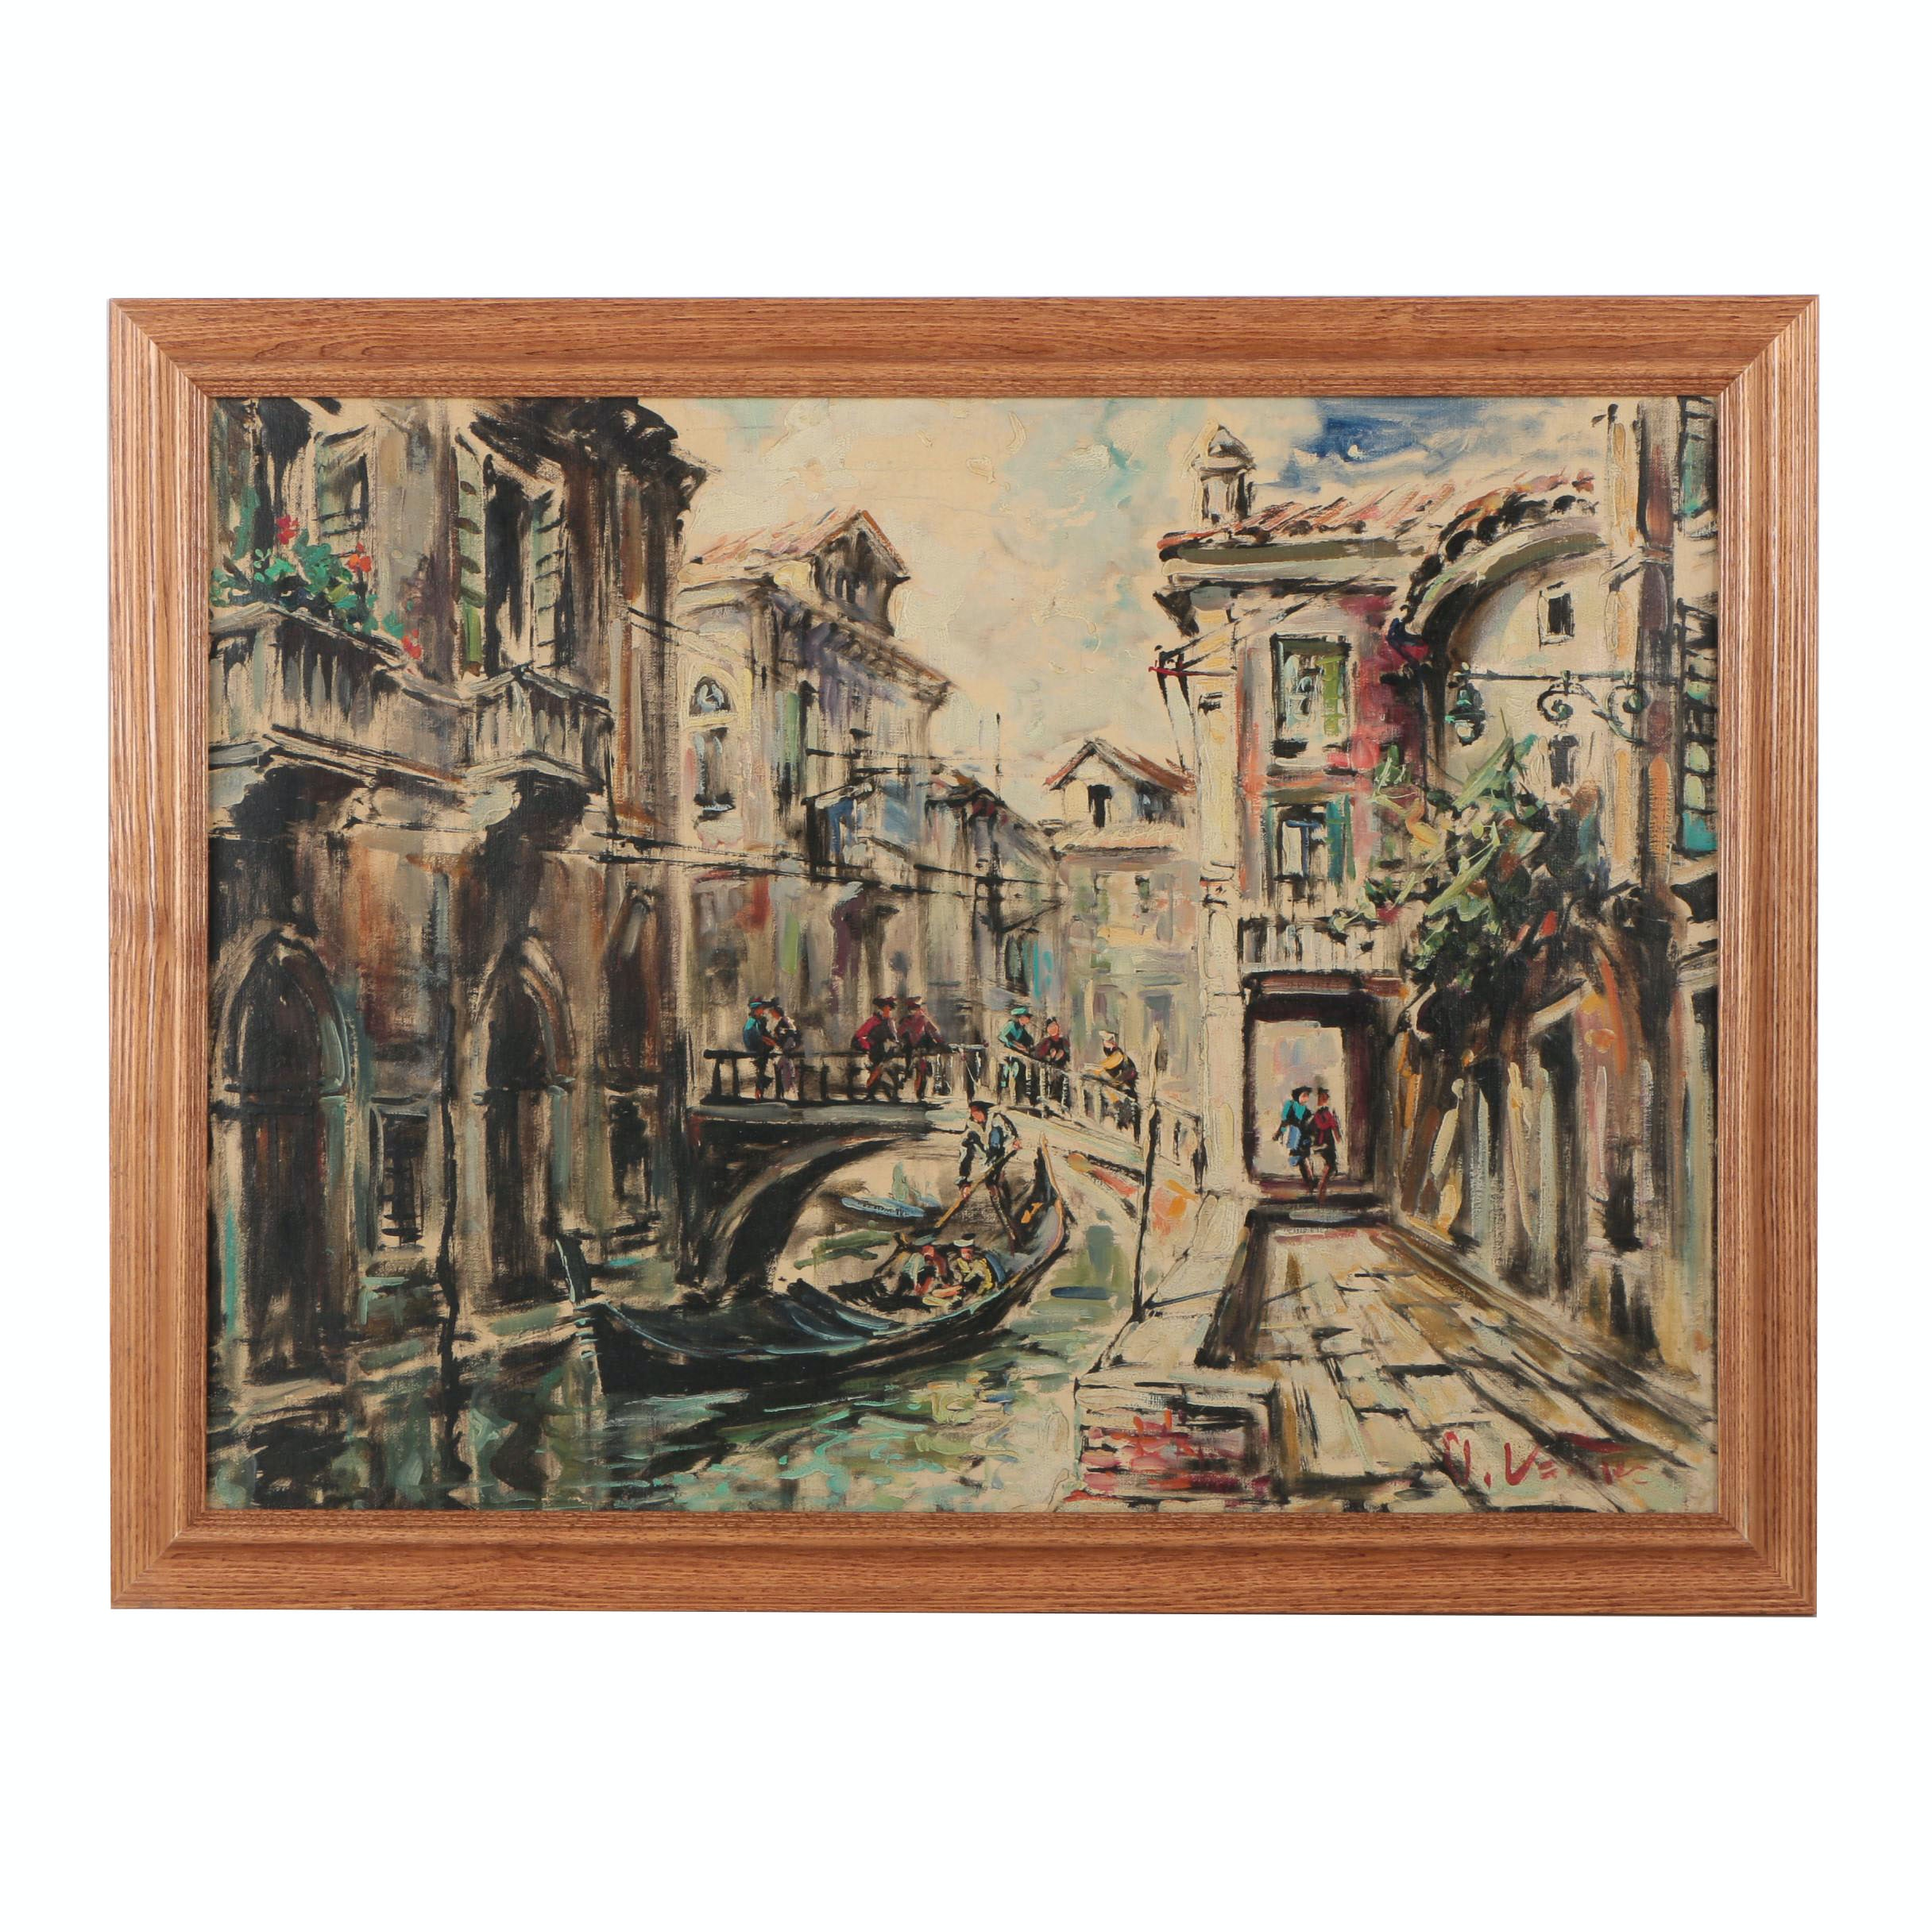 Vintage Oil Painting Attributed to D. Venice